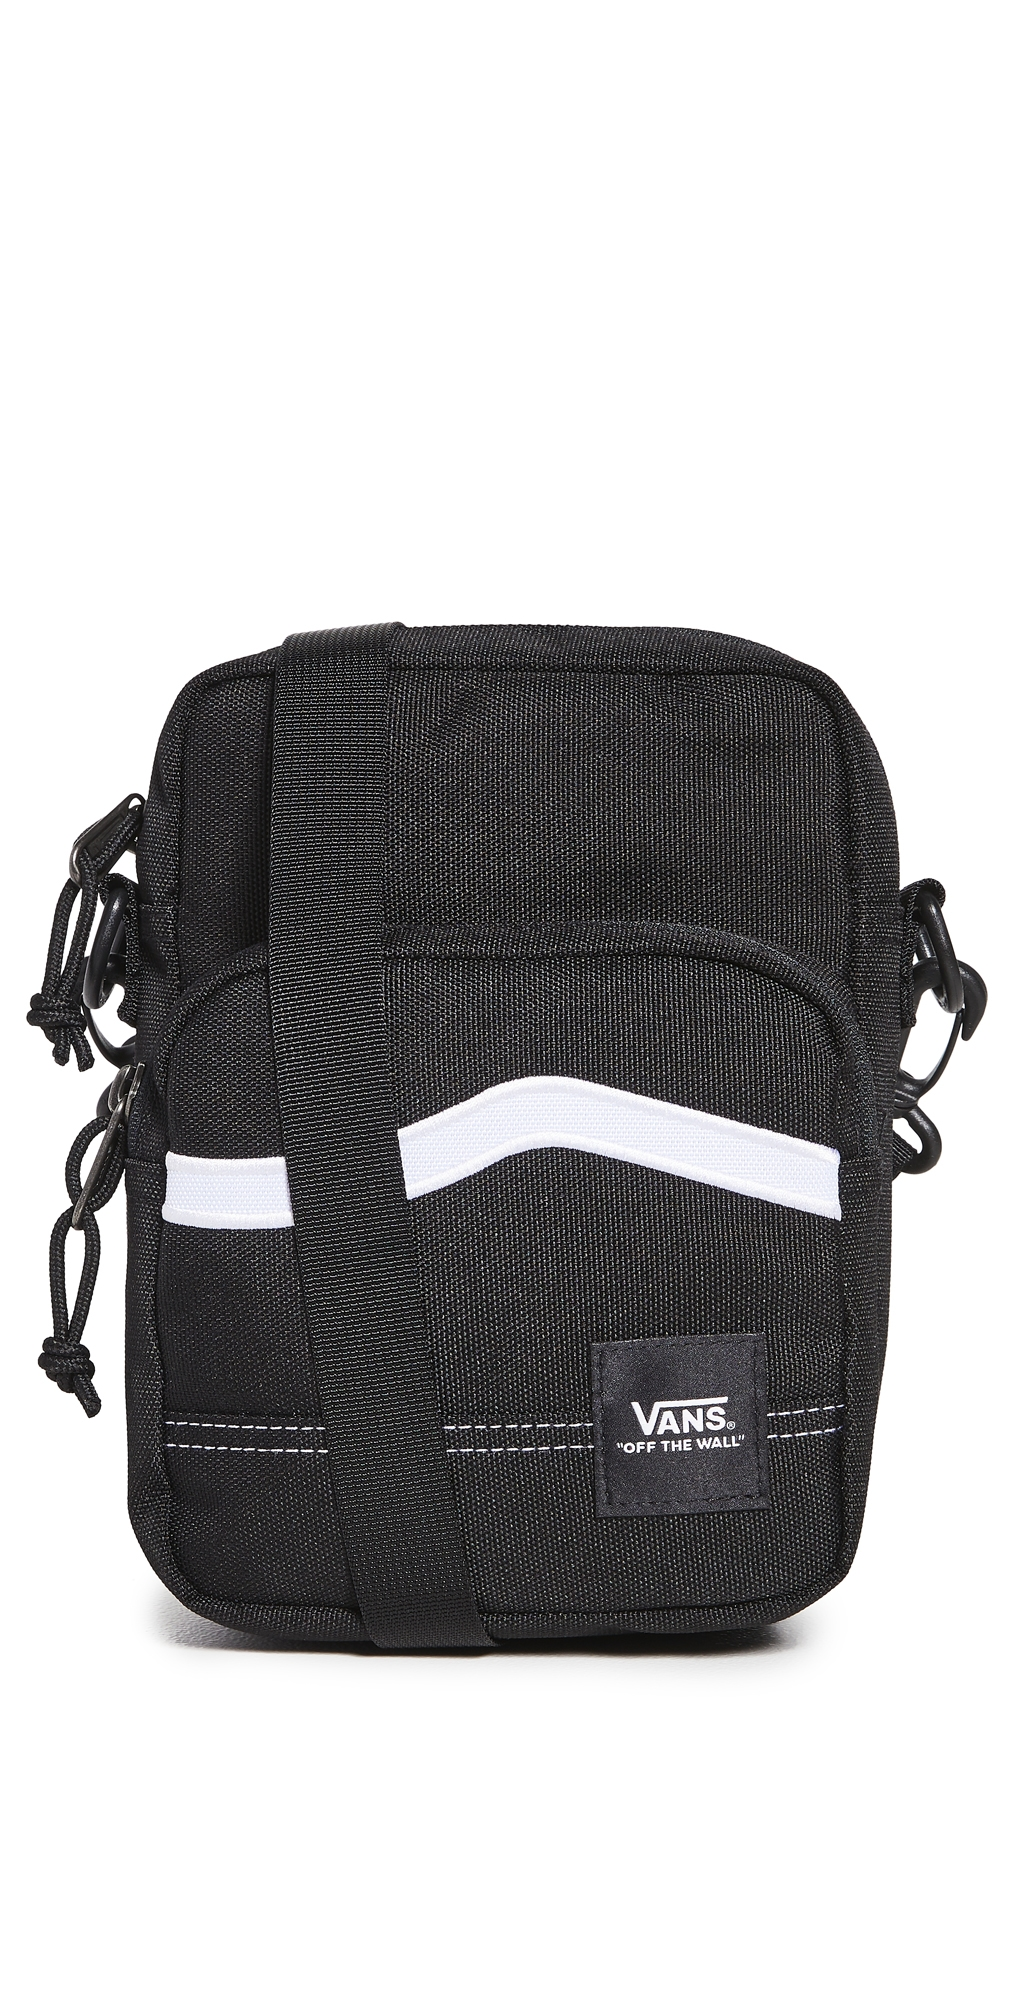 Vans CONSTRUCT SHOULDER BAG